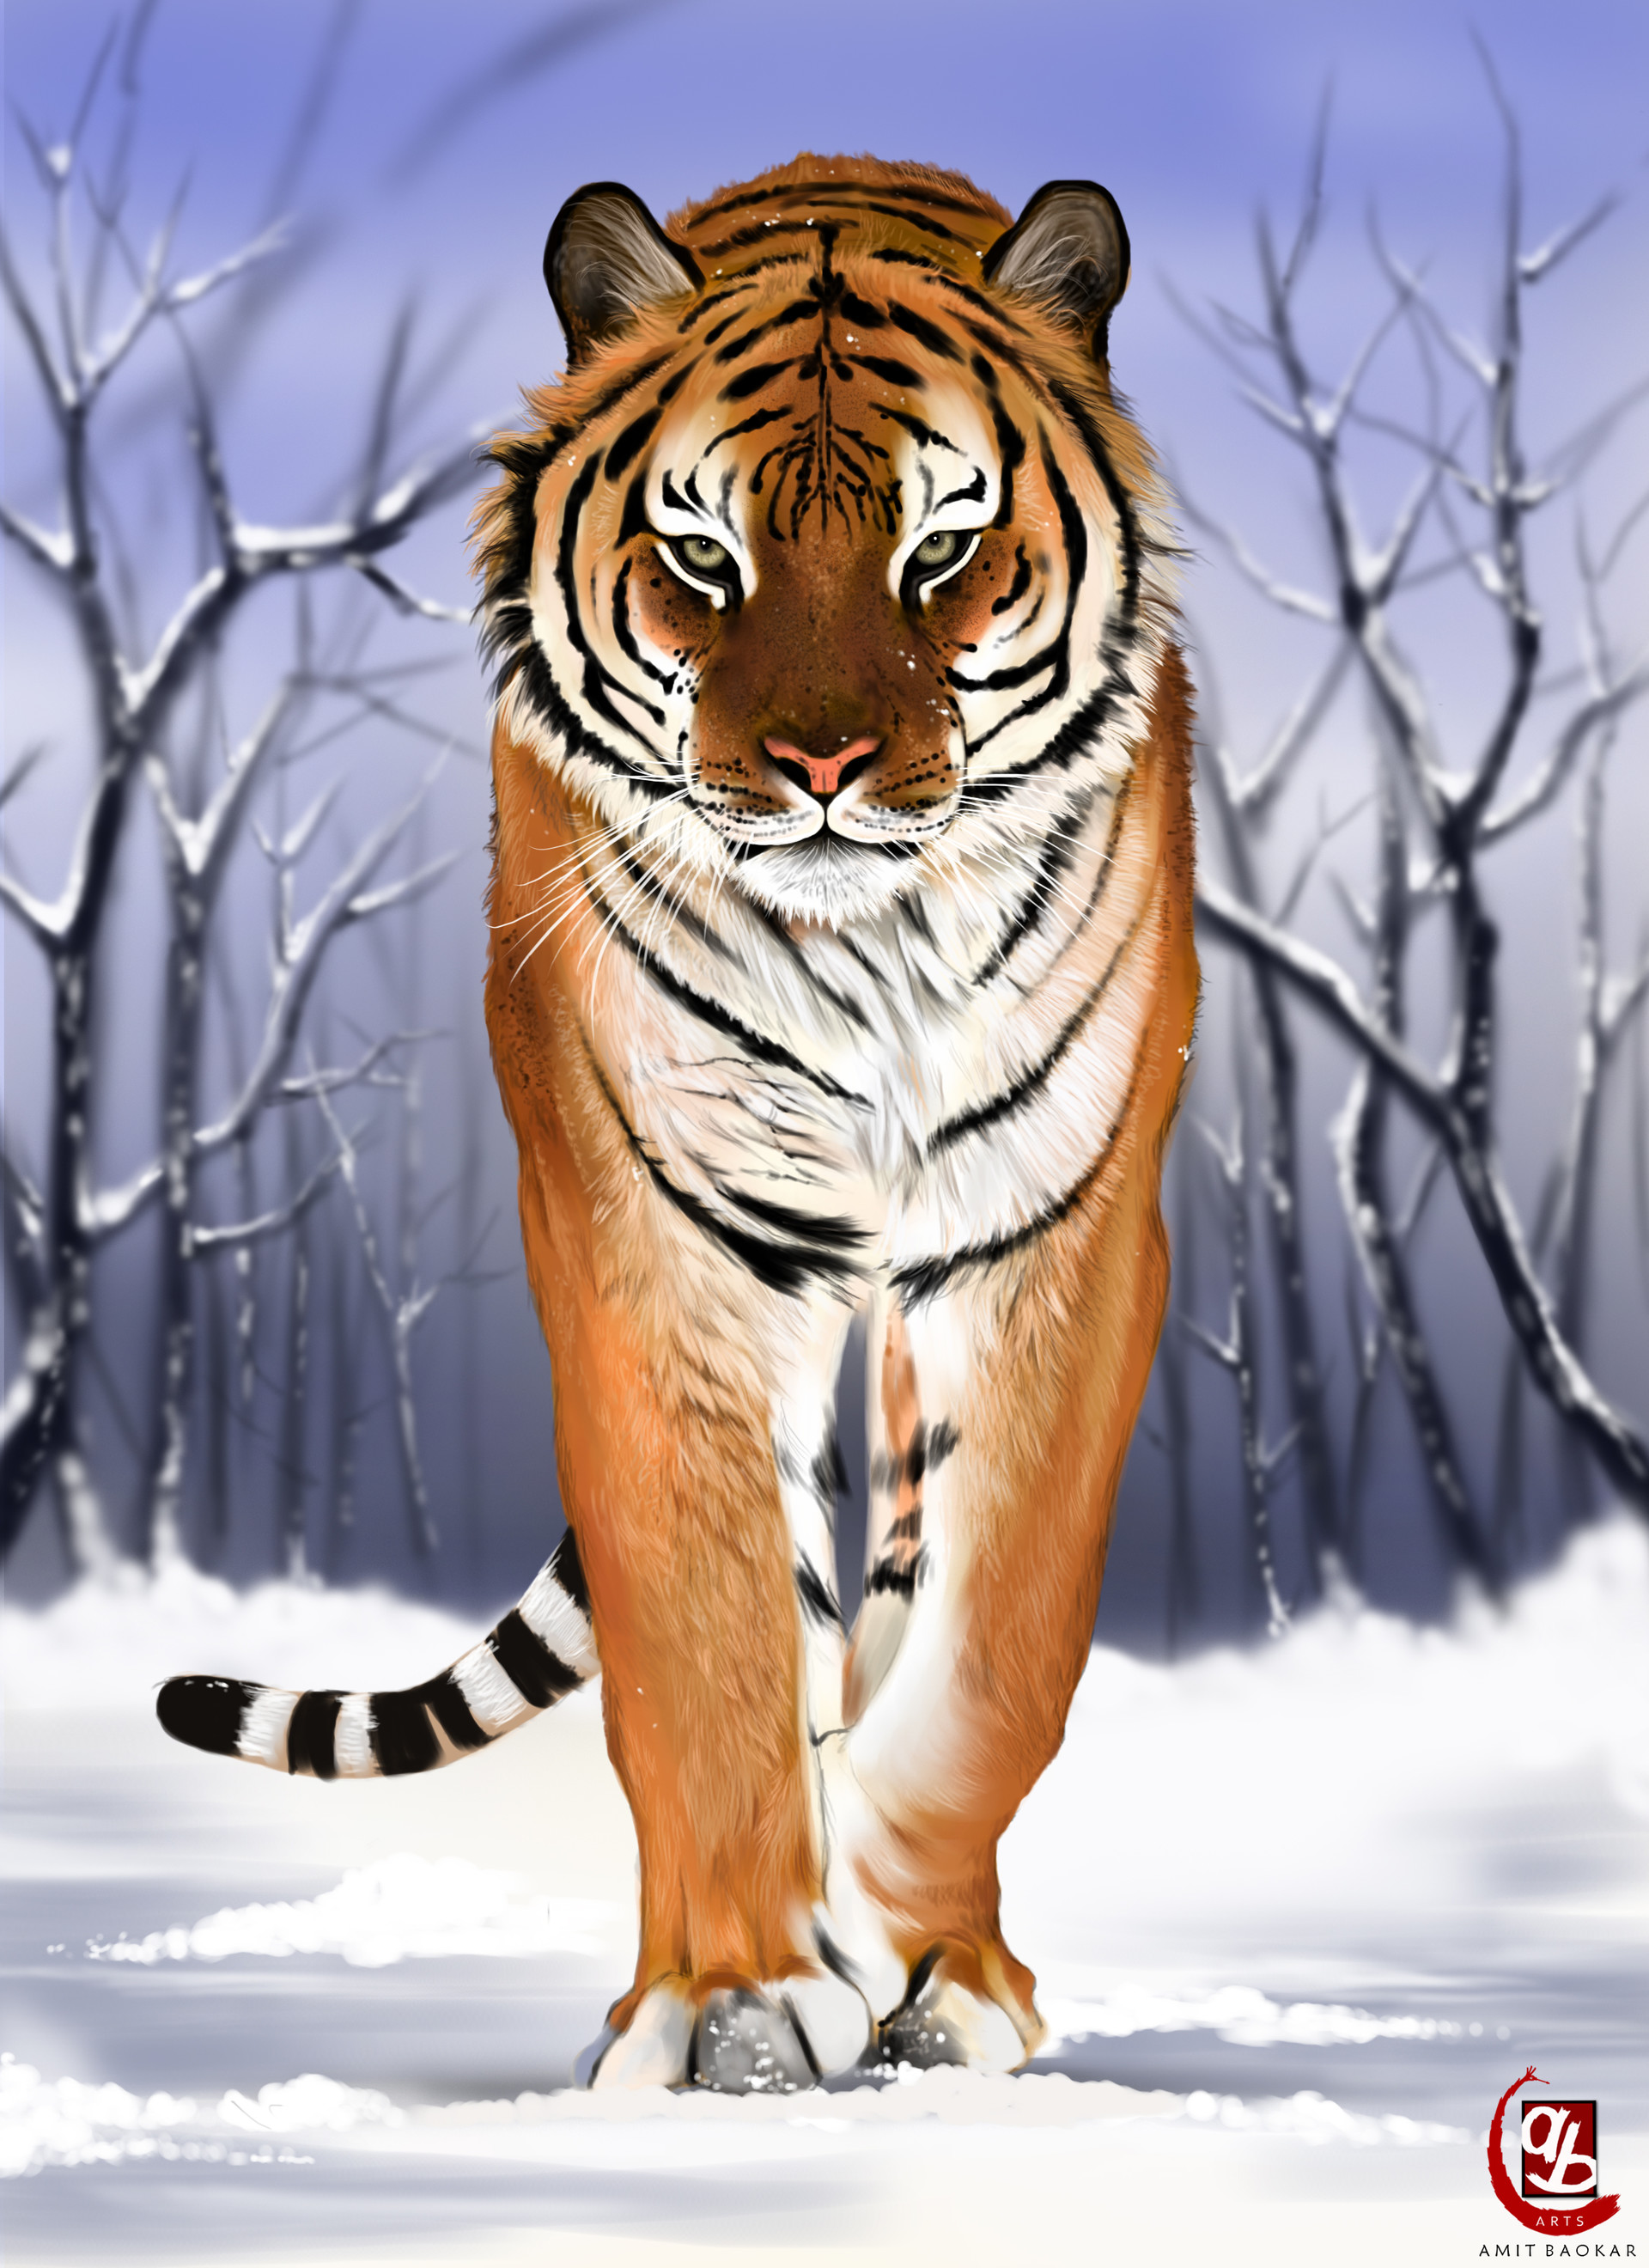 93903 download wallpaper Tiger, Predator, Big Cat, Snow, Art screensavers and pictures for free